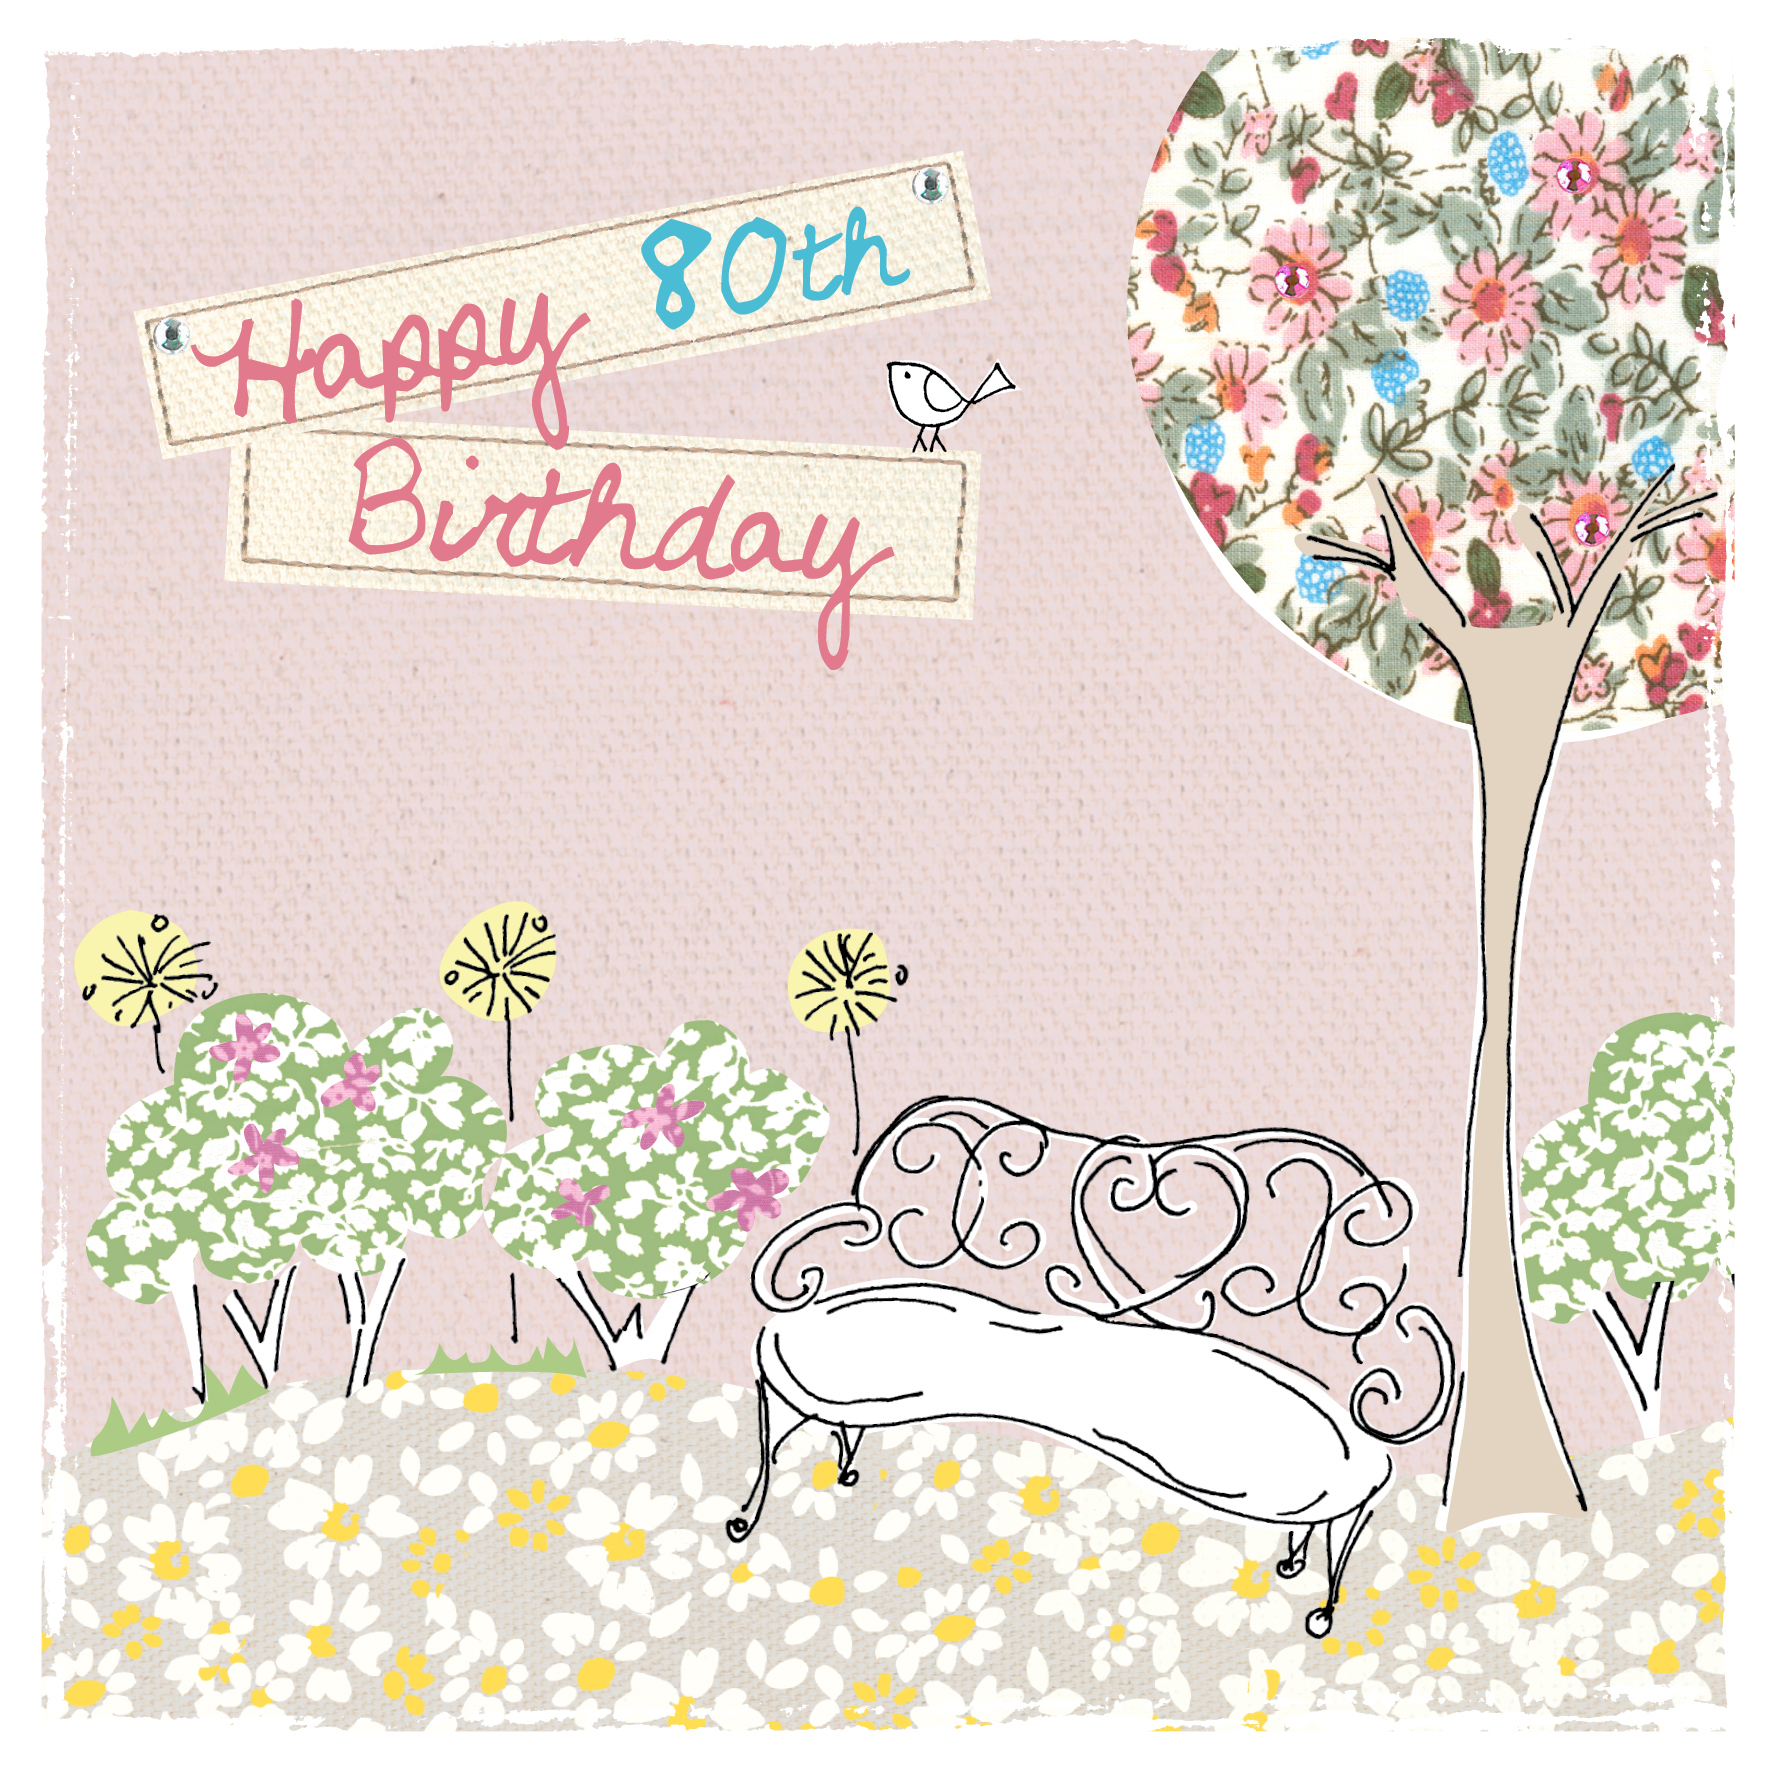 buy 80th birthday cards for her online with garden bench flowers tree at karenza paperie